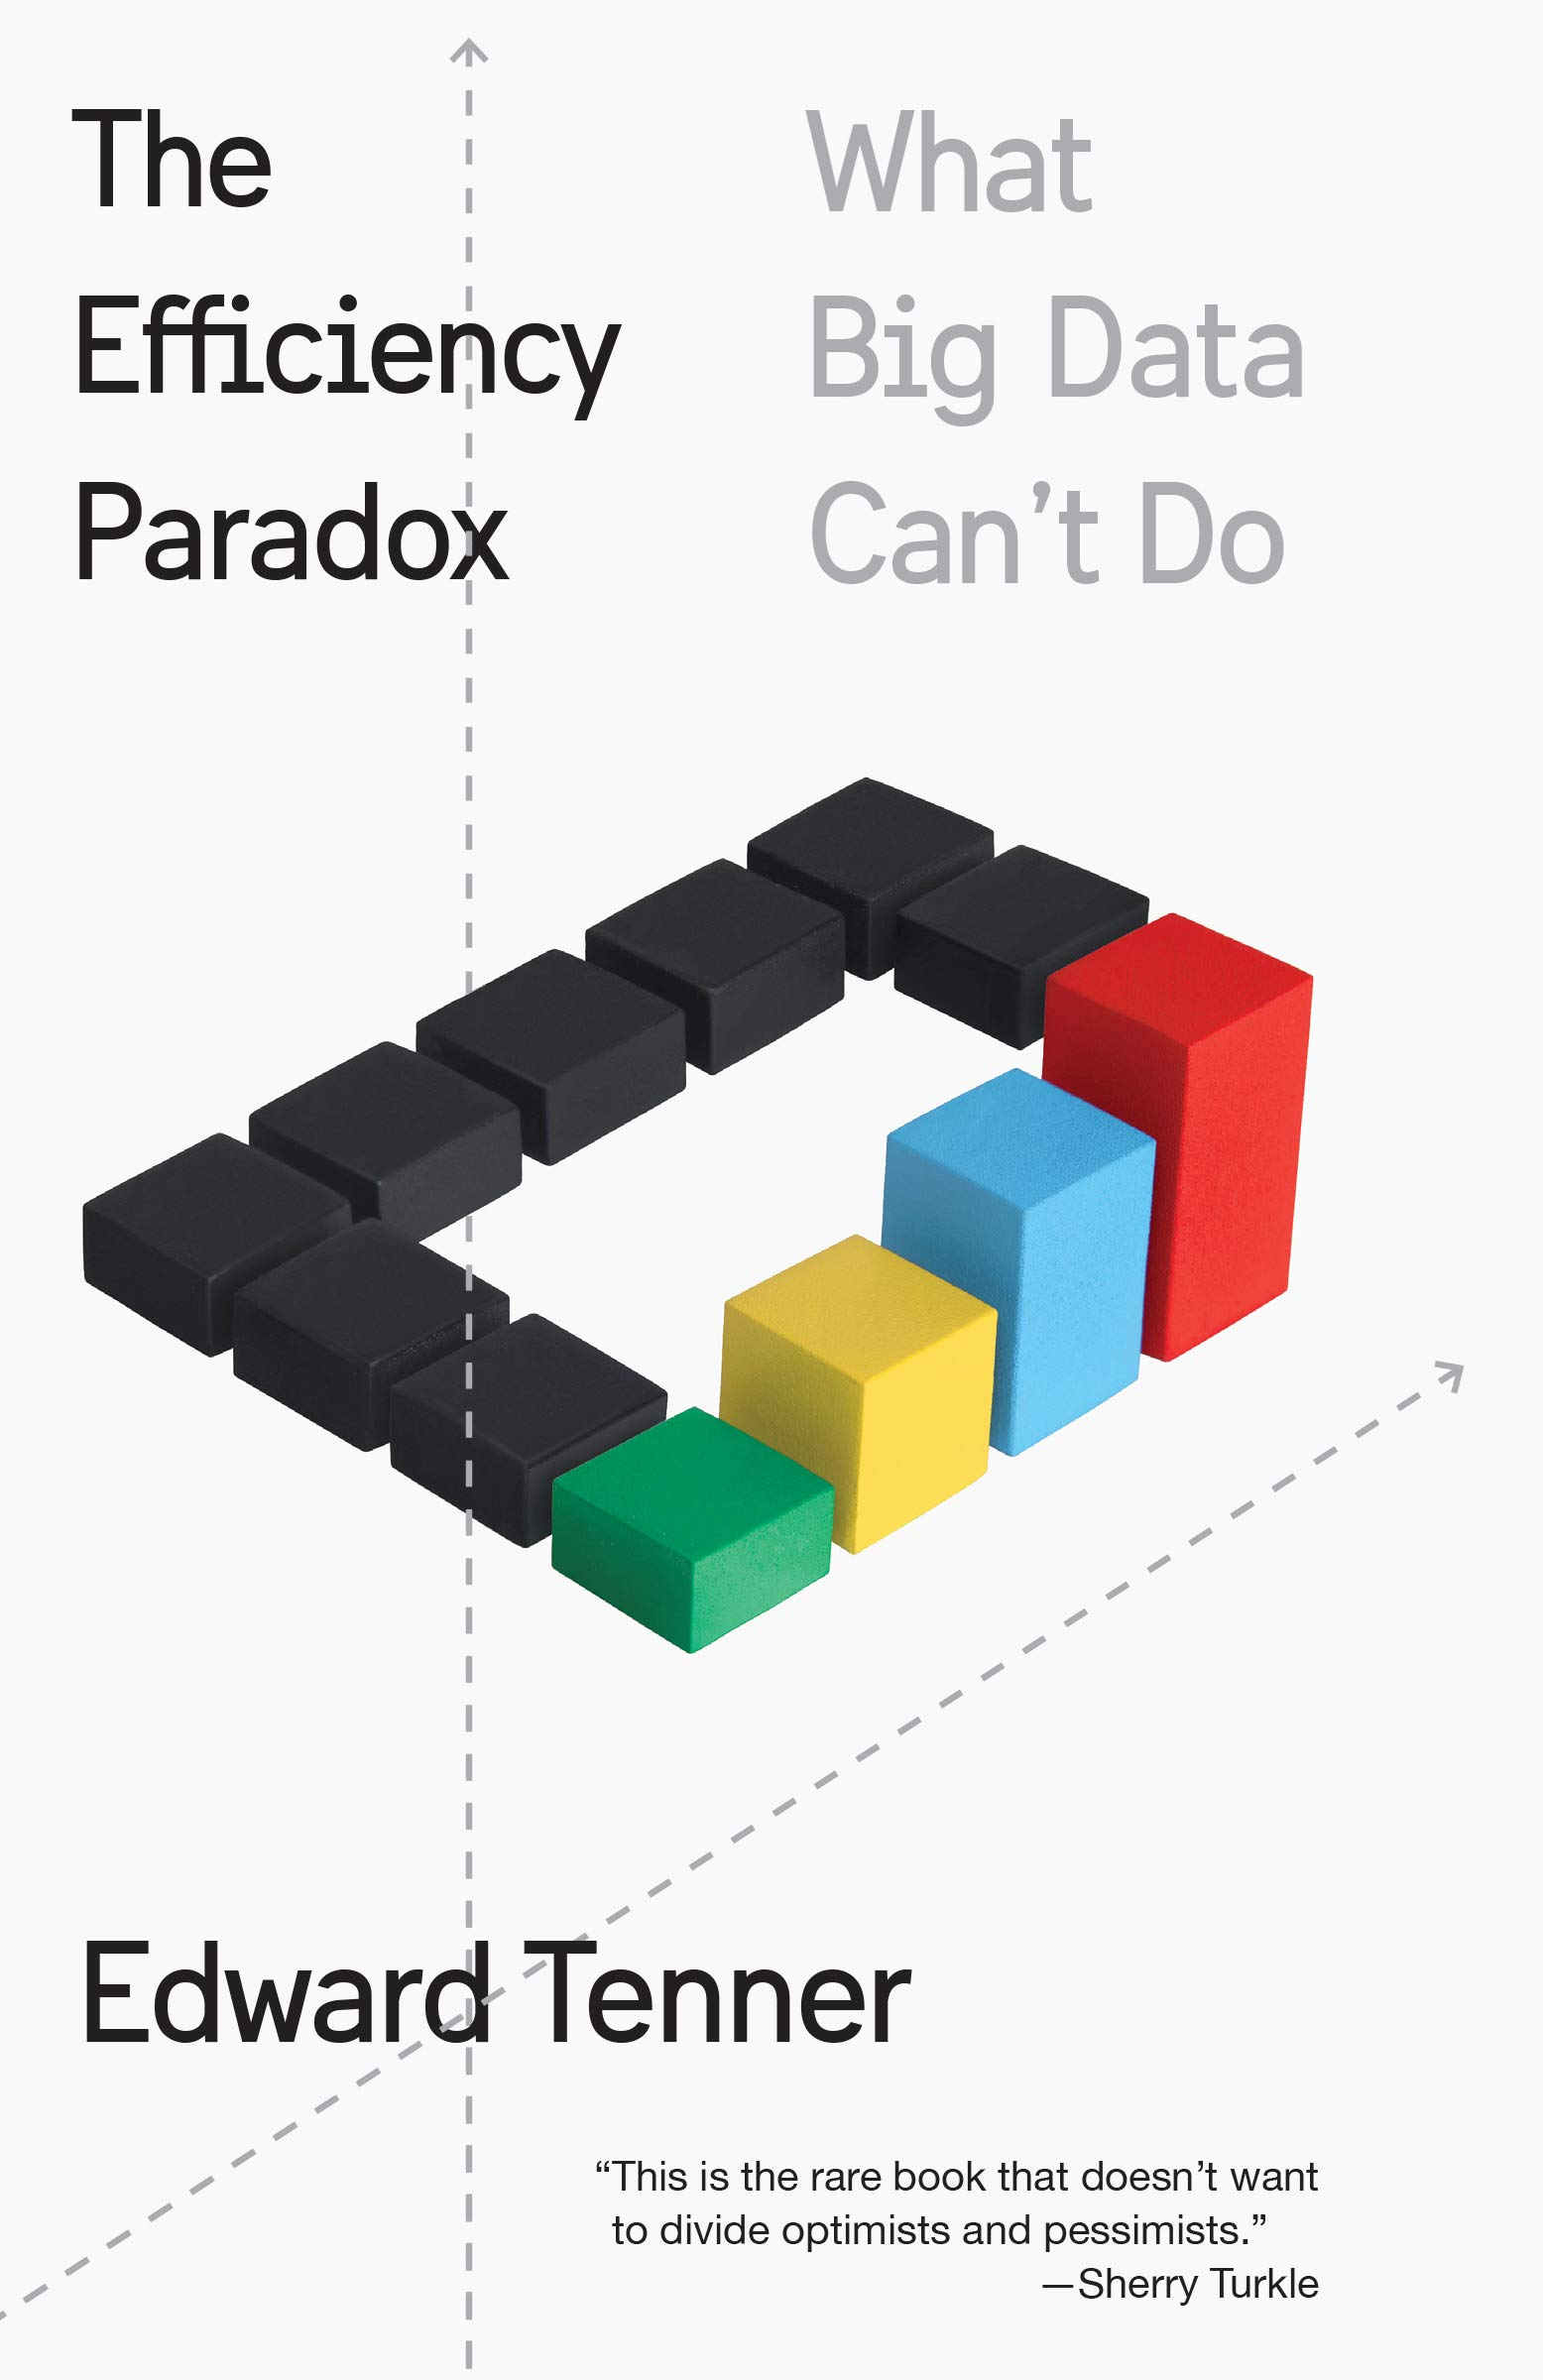 The Efficiency Paradox: What Big Data Can't Do thumbnail